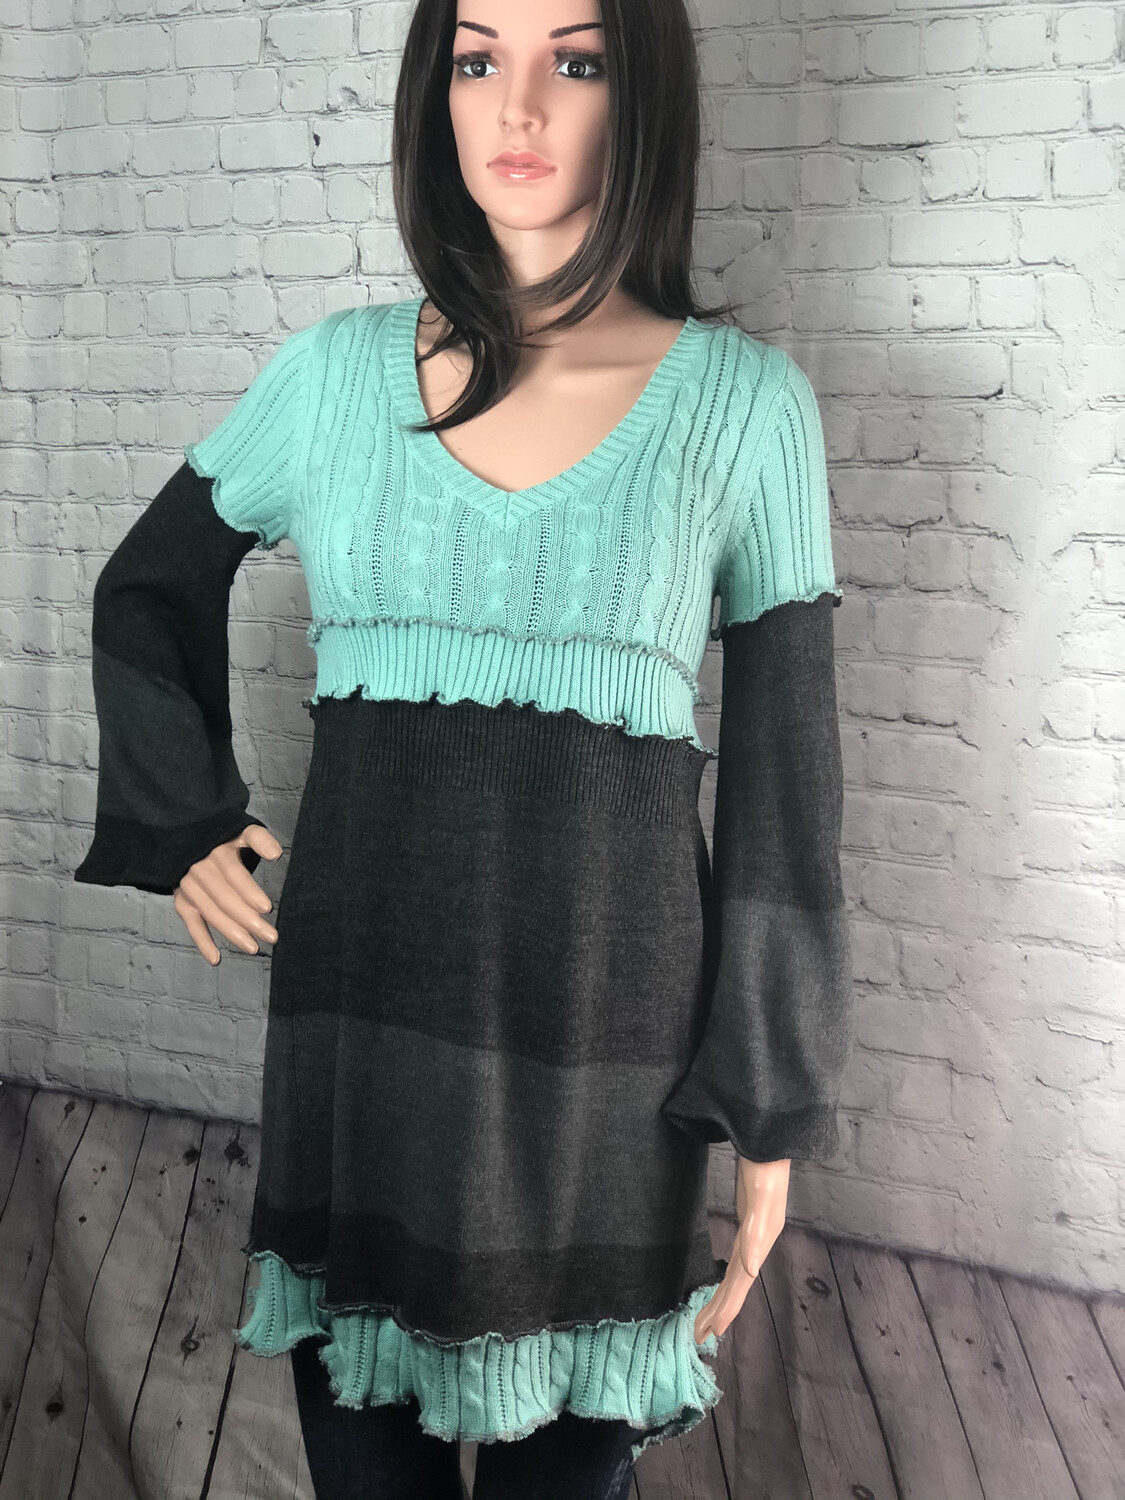 S Threads Upcycled Recycled Bell Sleeve Sweater Dress OOAK Refashion Ruffle Hem Recreated Outside Seam Size Medium